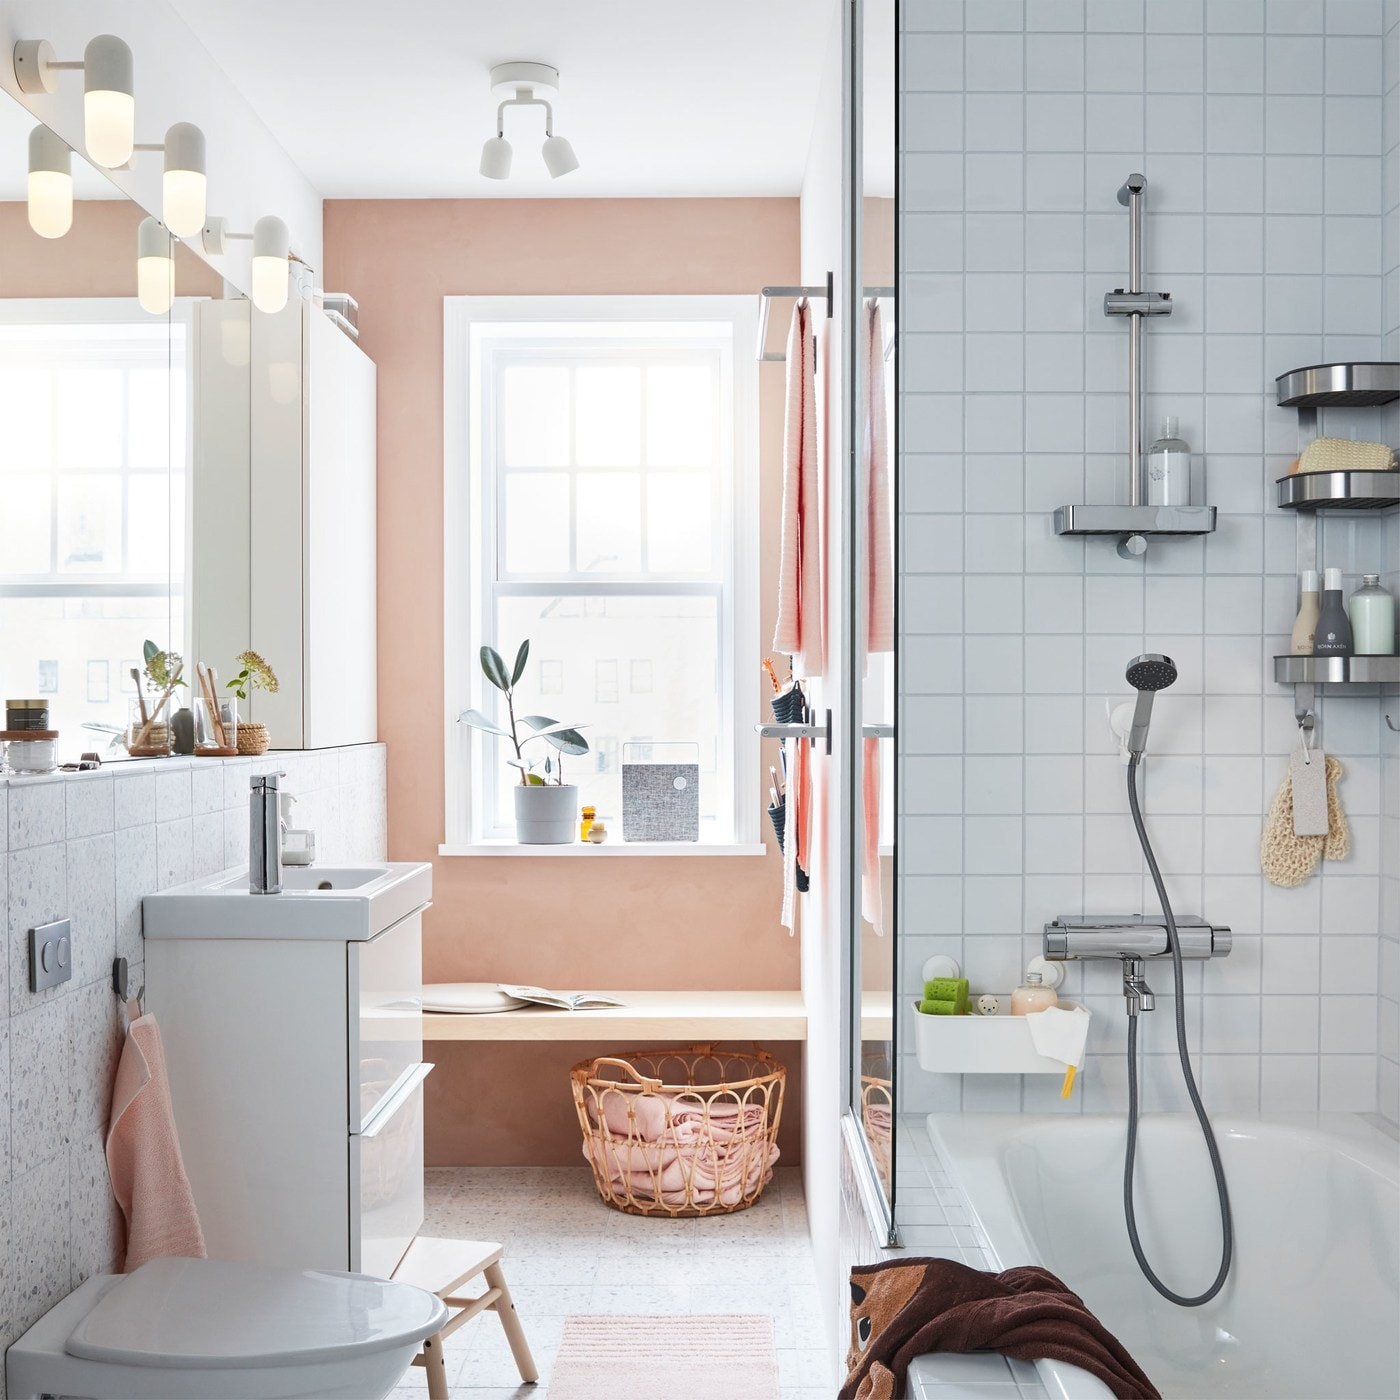 A white and grey tiled bathroom, with a pink accent wall, with an IKEA GODMORGON wash stand and a row of GODMORGON mirrors.